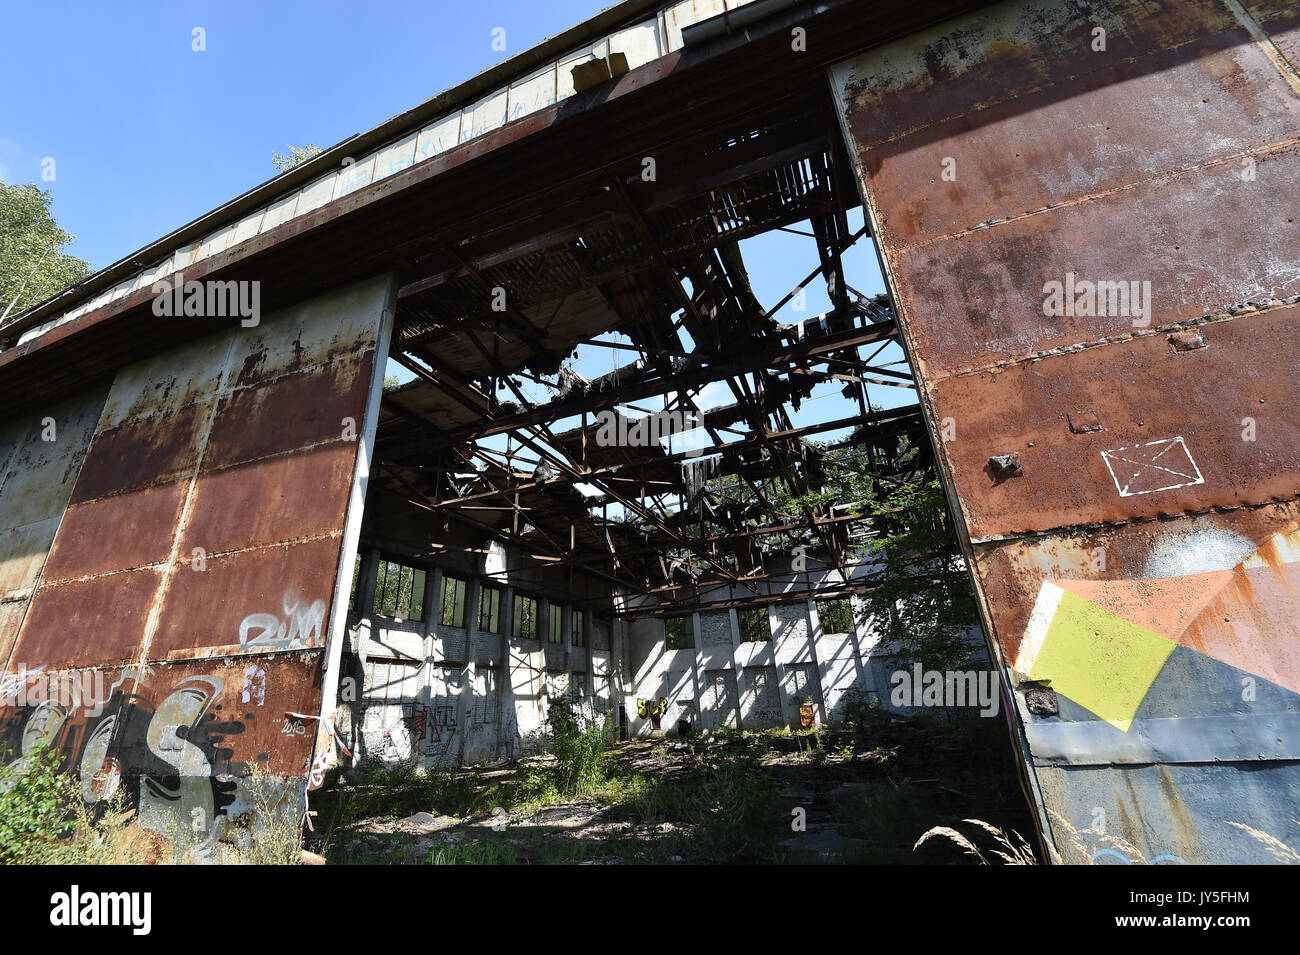 The Gate Of Landmarked Hangar In Grounds Former Schonwalde Air Base Germany 17 August 2017 An Investor Is Aiming To Purchase